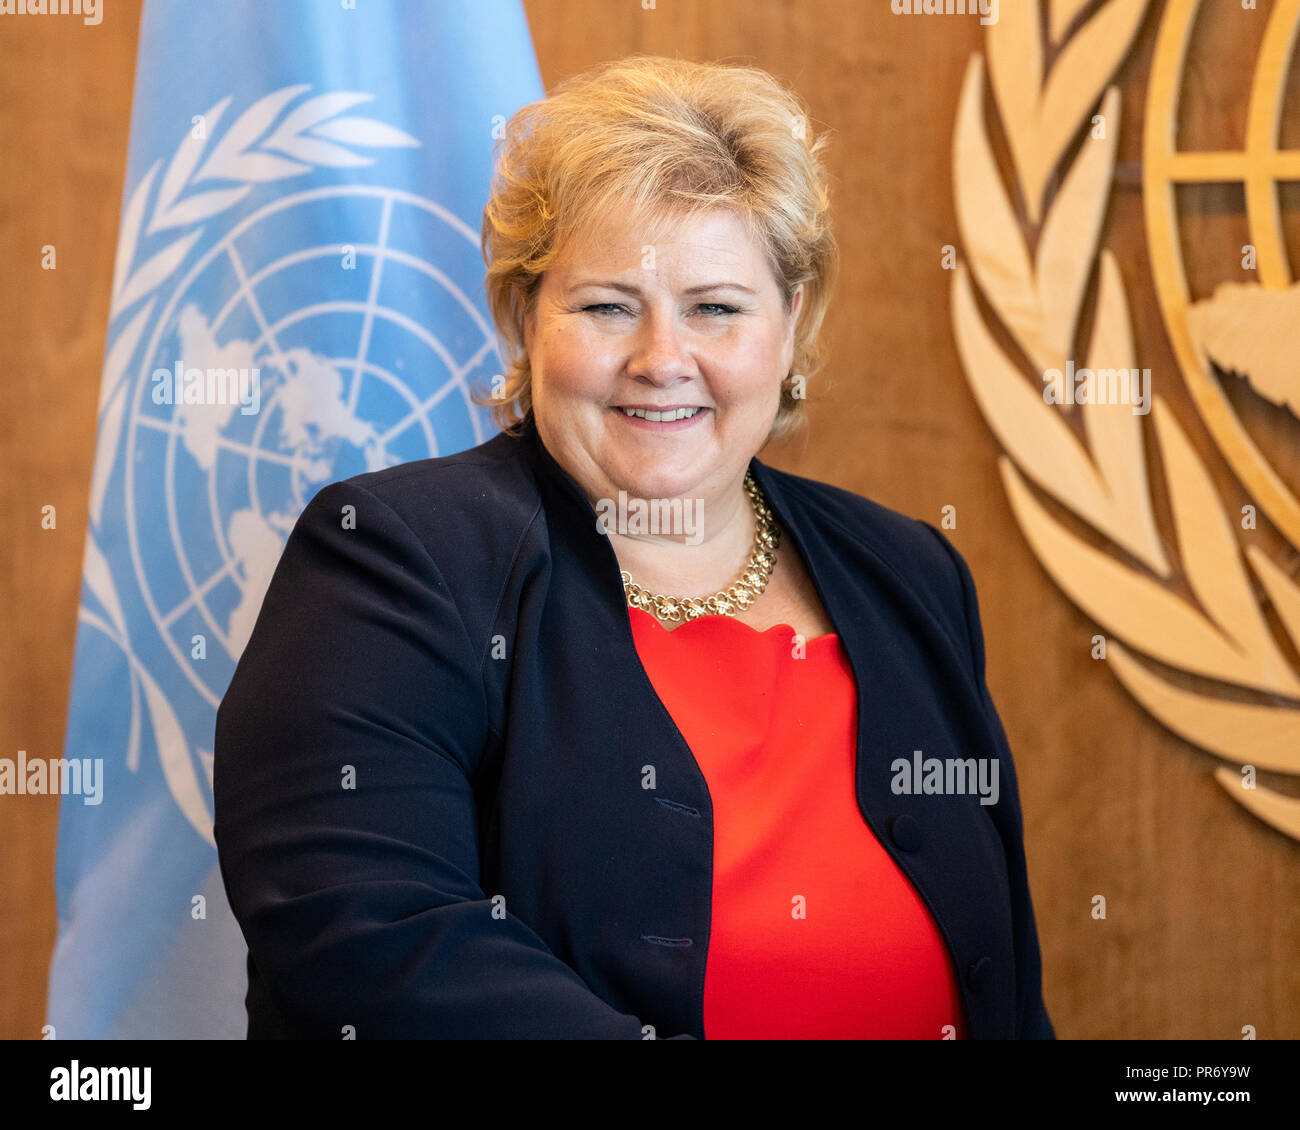 Erna Solberg High Resolution Stock Photography And Images Alamy